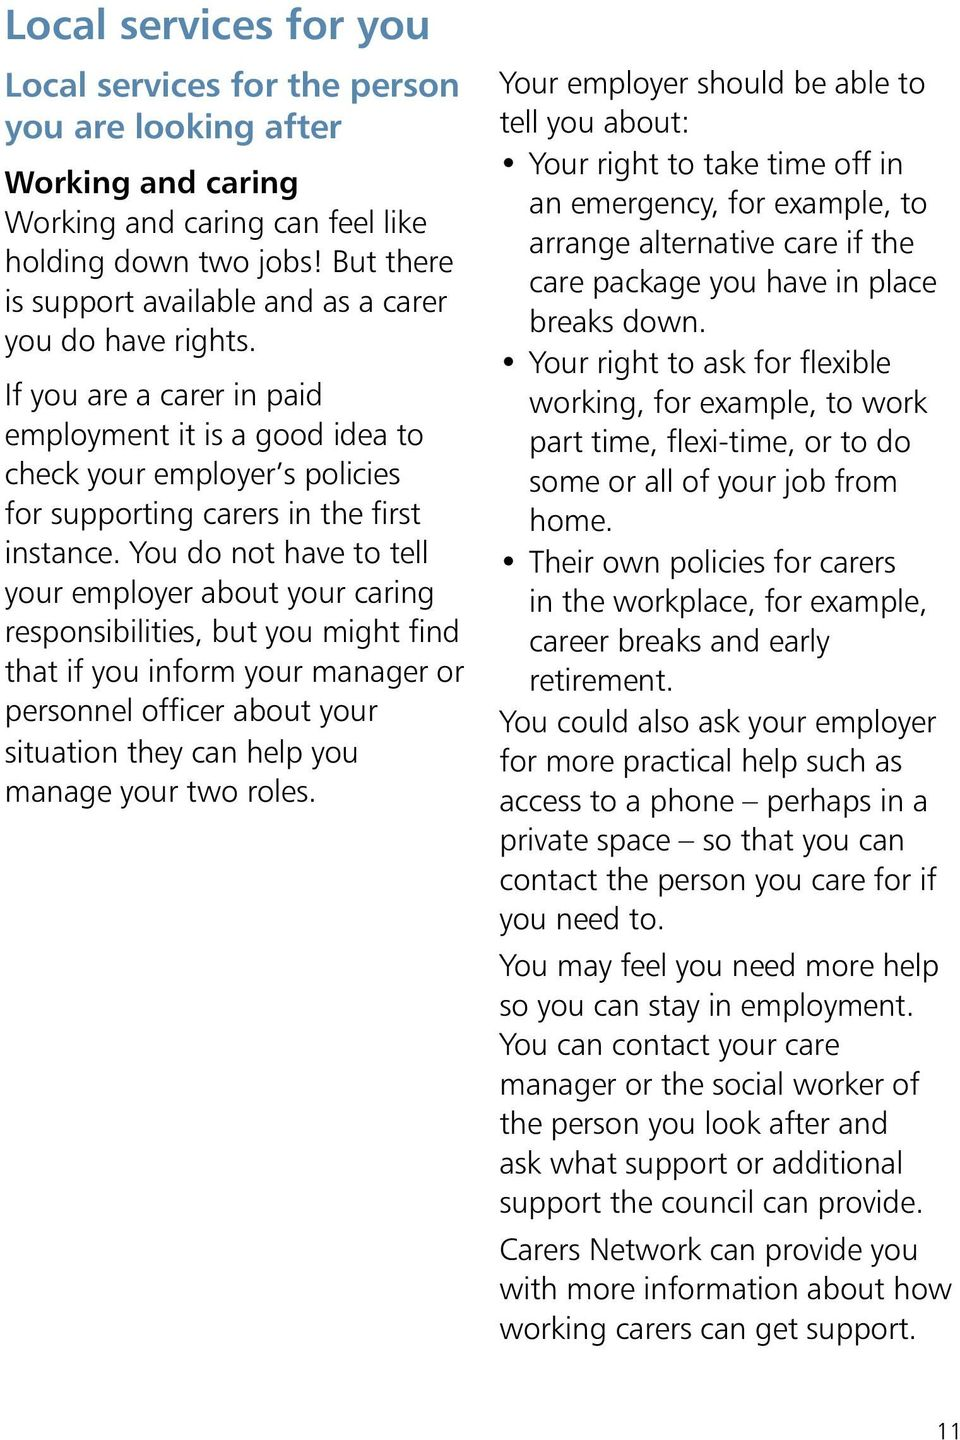 You do not have to tell your employer about your caring responsibilities, but you might find that if you inform your manager or personnel officer about your situation they can help you manage your